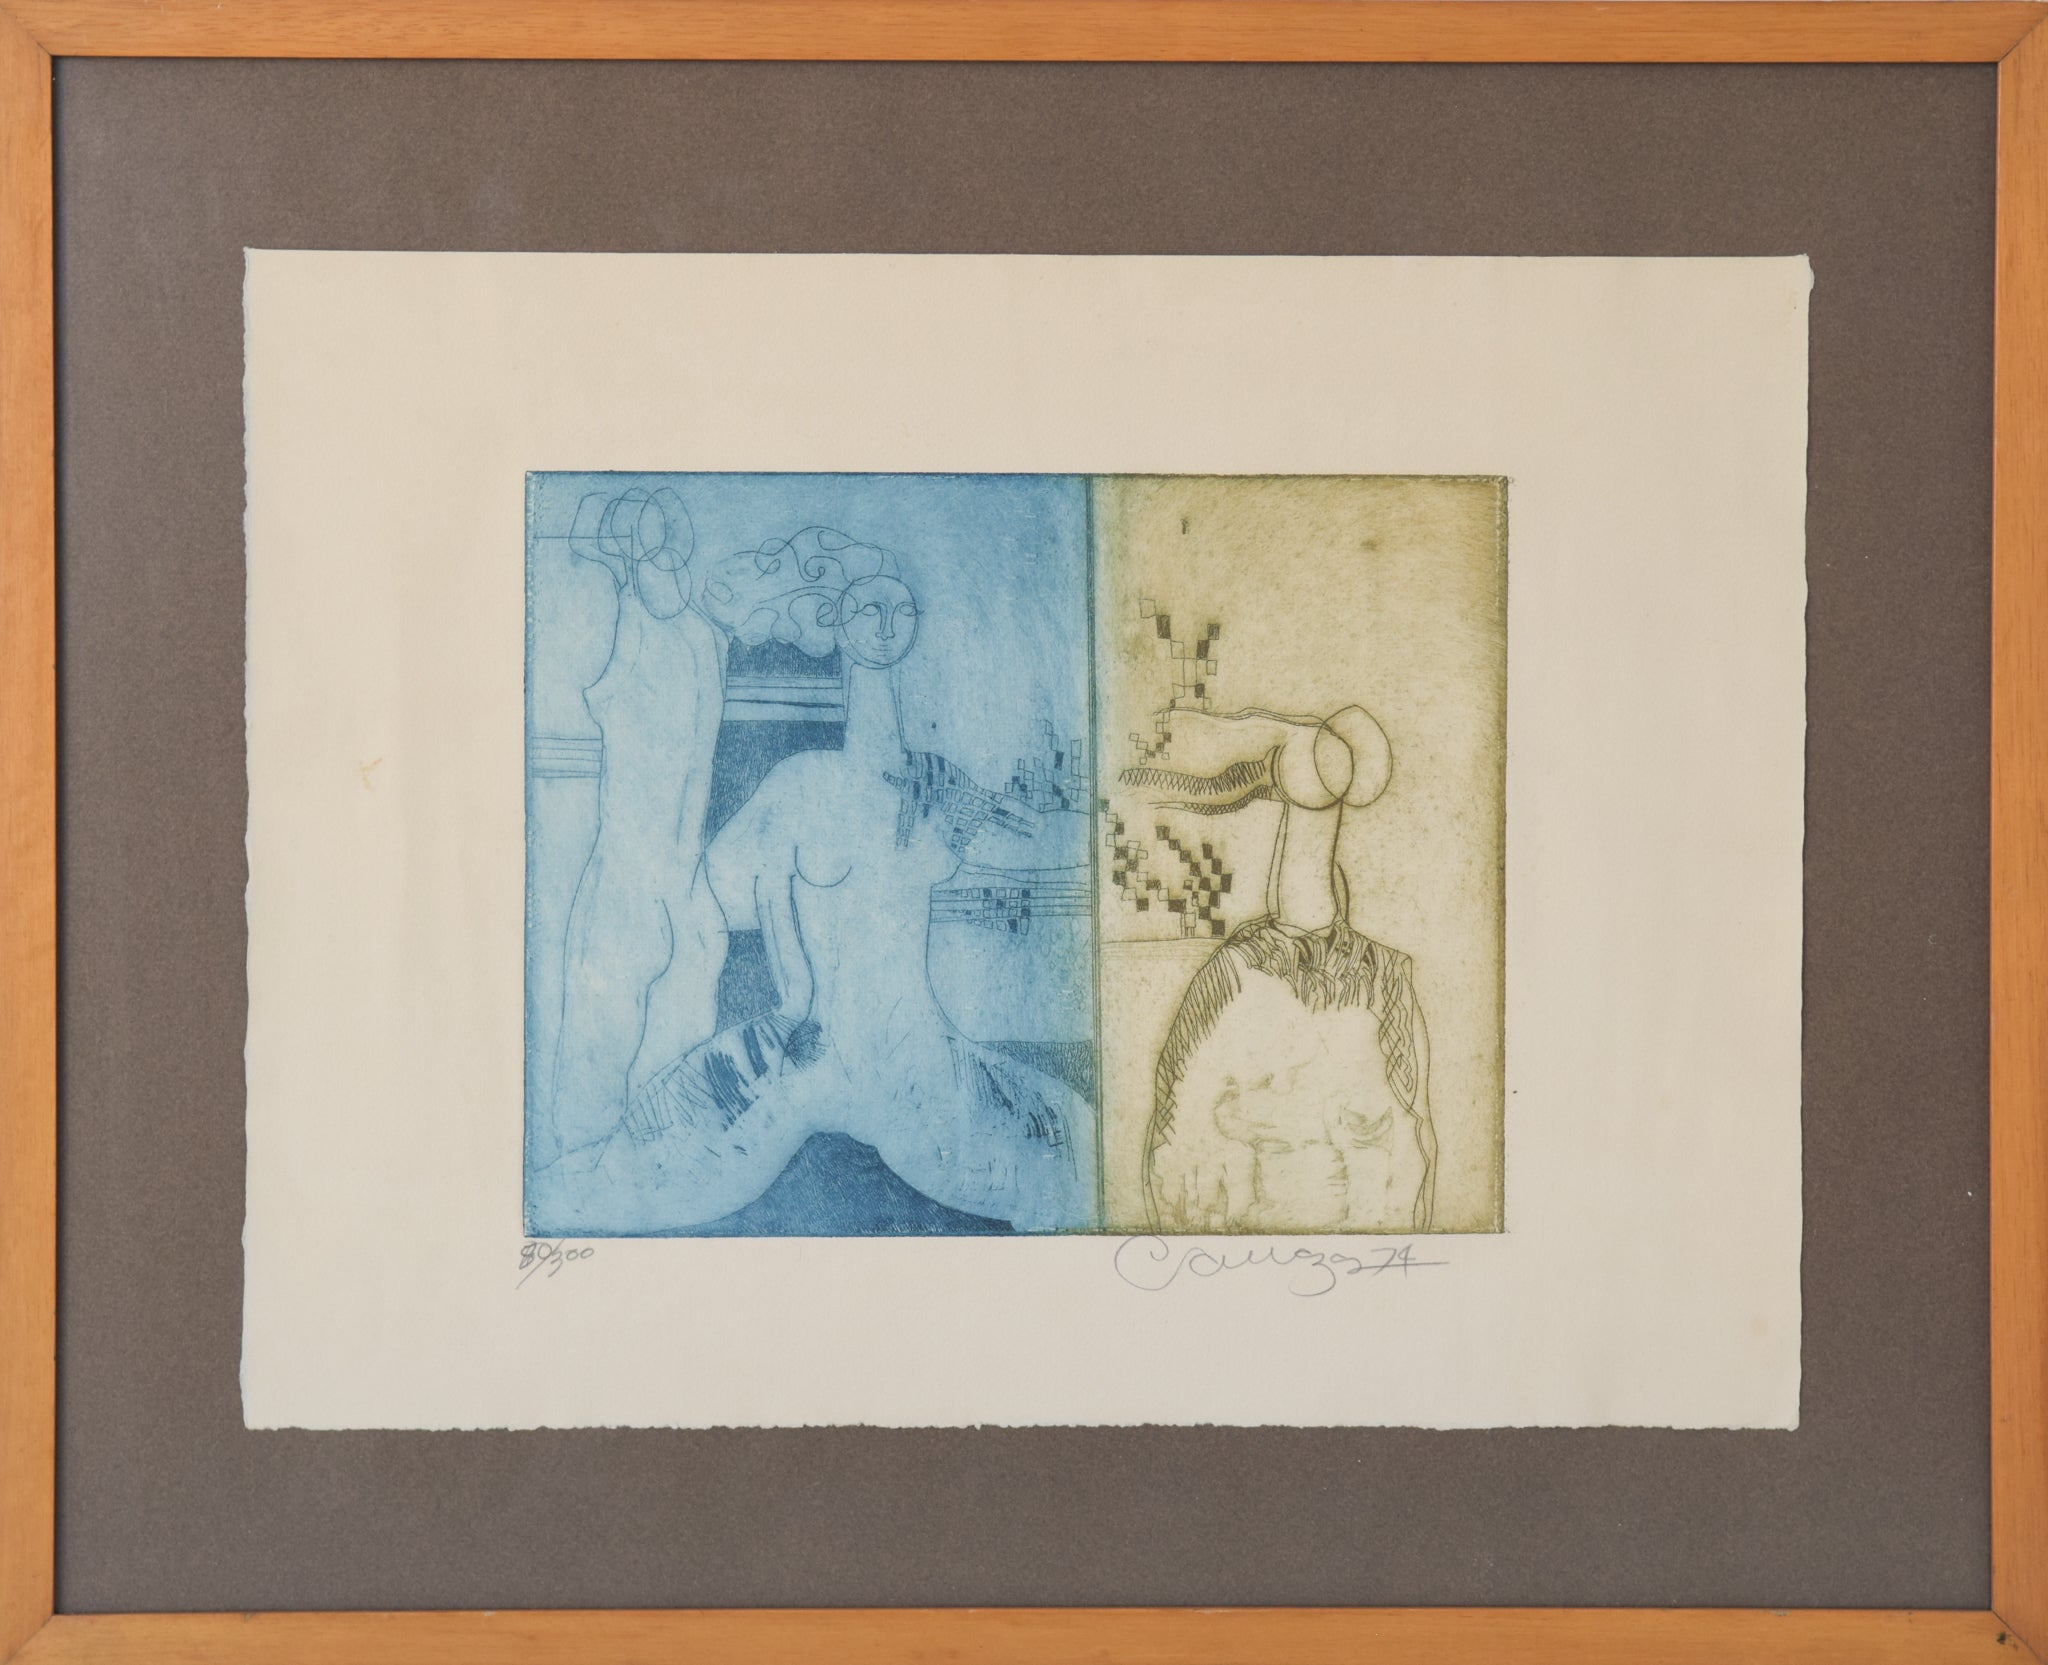 Etching with Nude Figures and Abstract Design_Framed